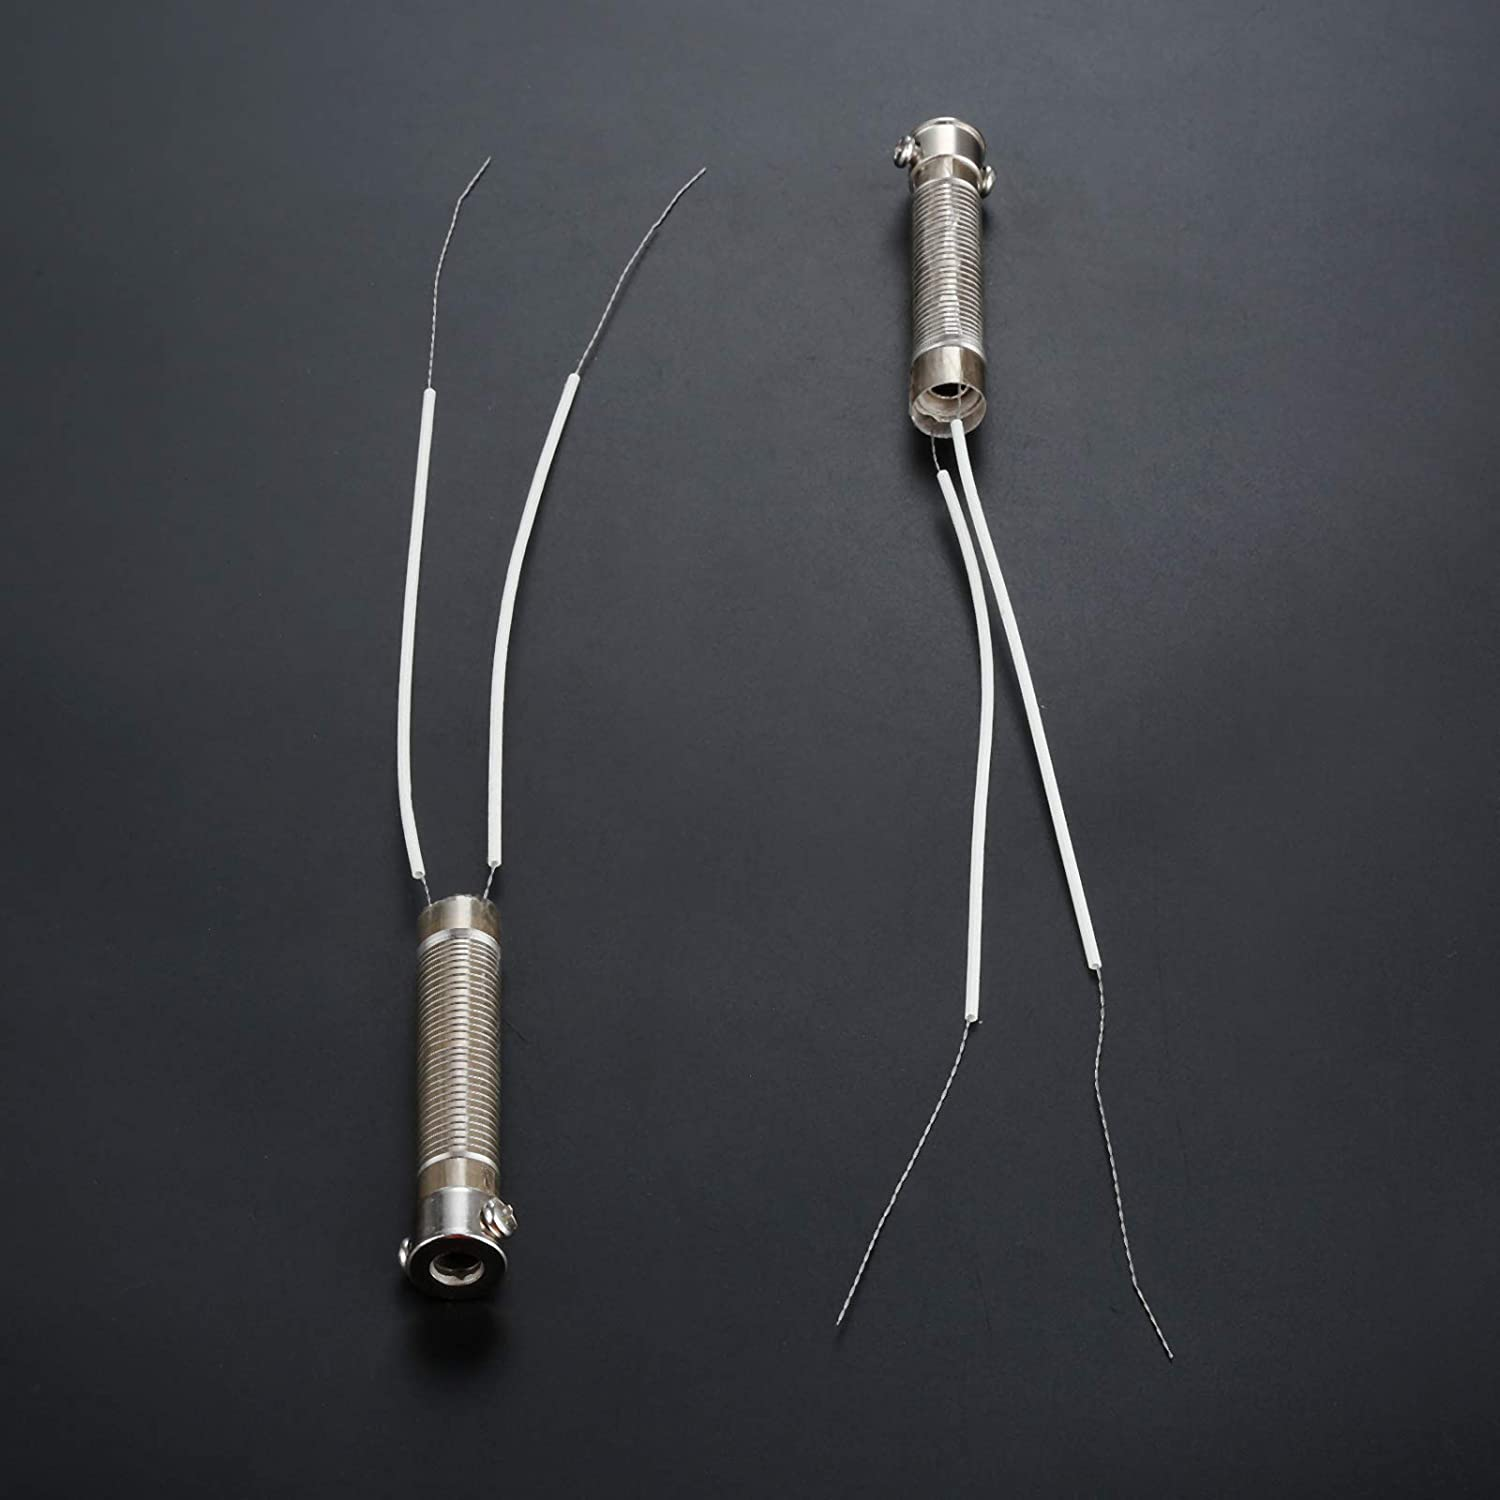 2pcs 220V 80W Welder Electric Soldering Iron Wired Heat Element Core Replacement Dreld